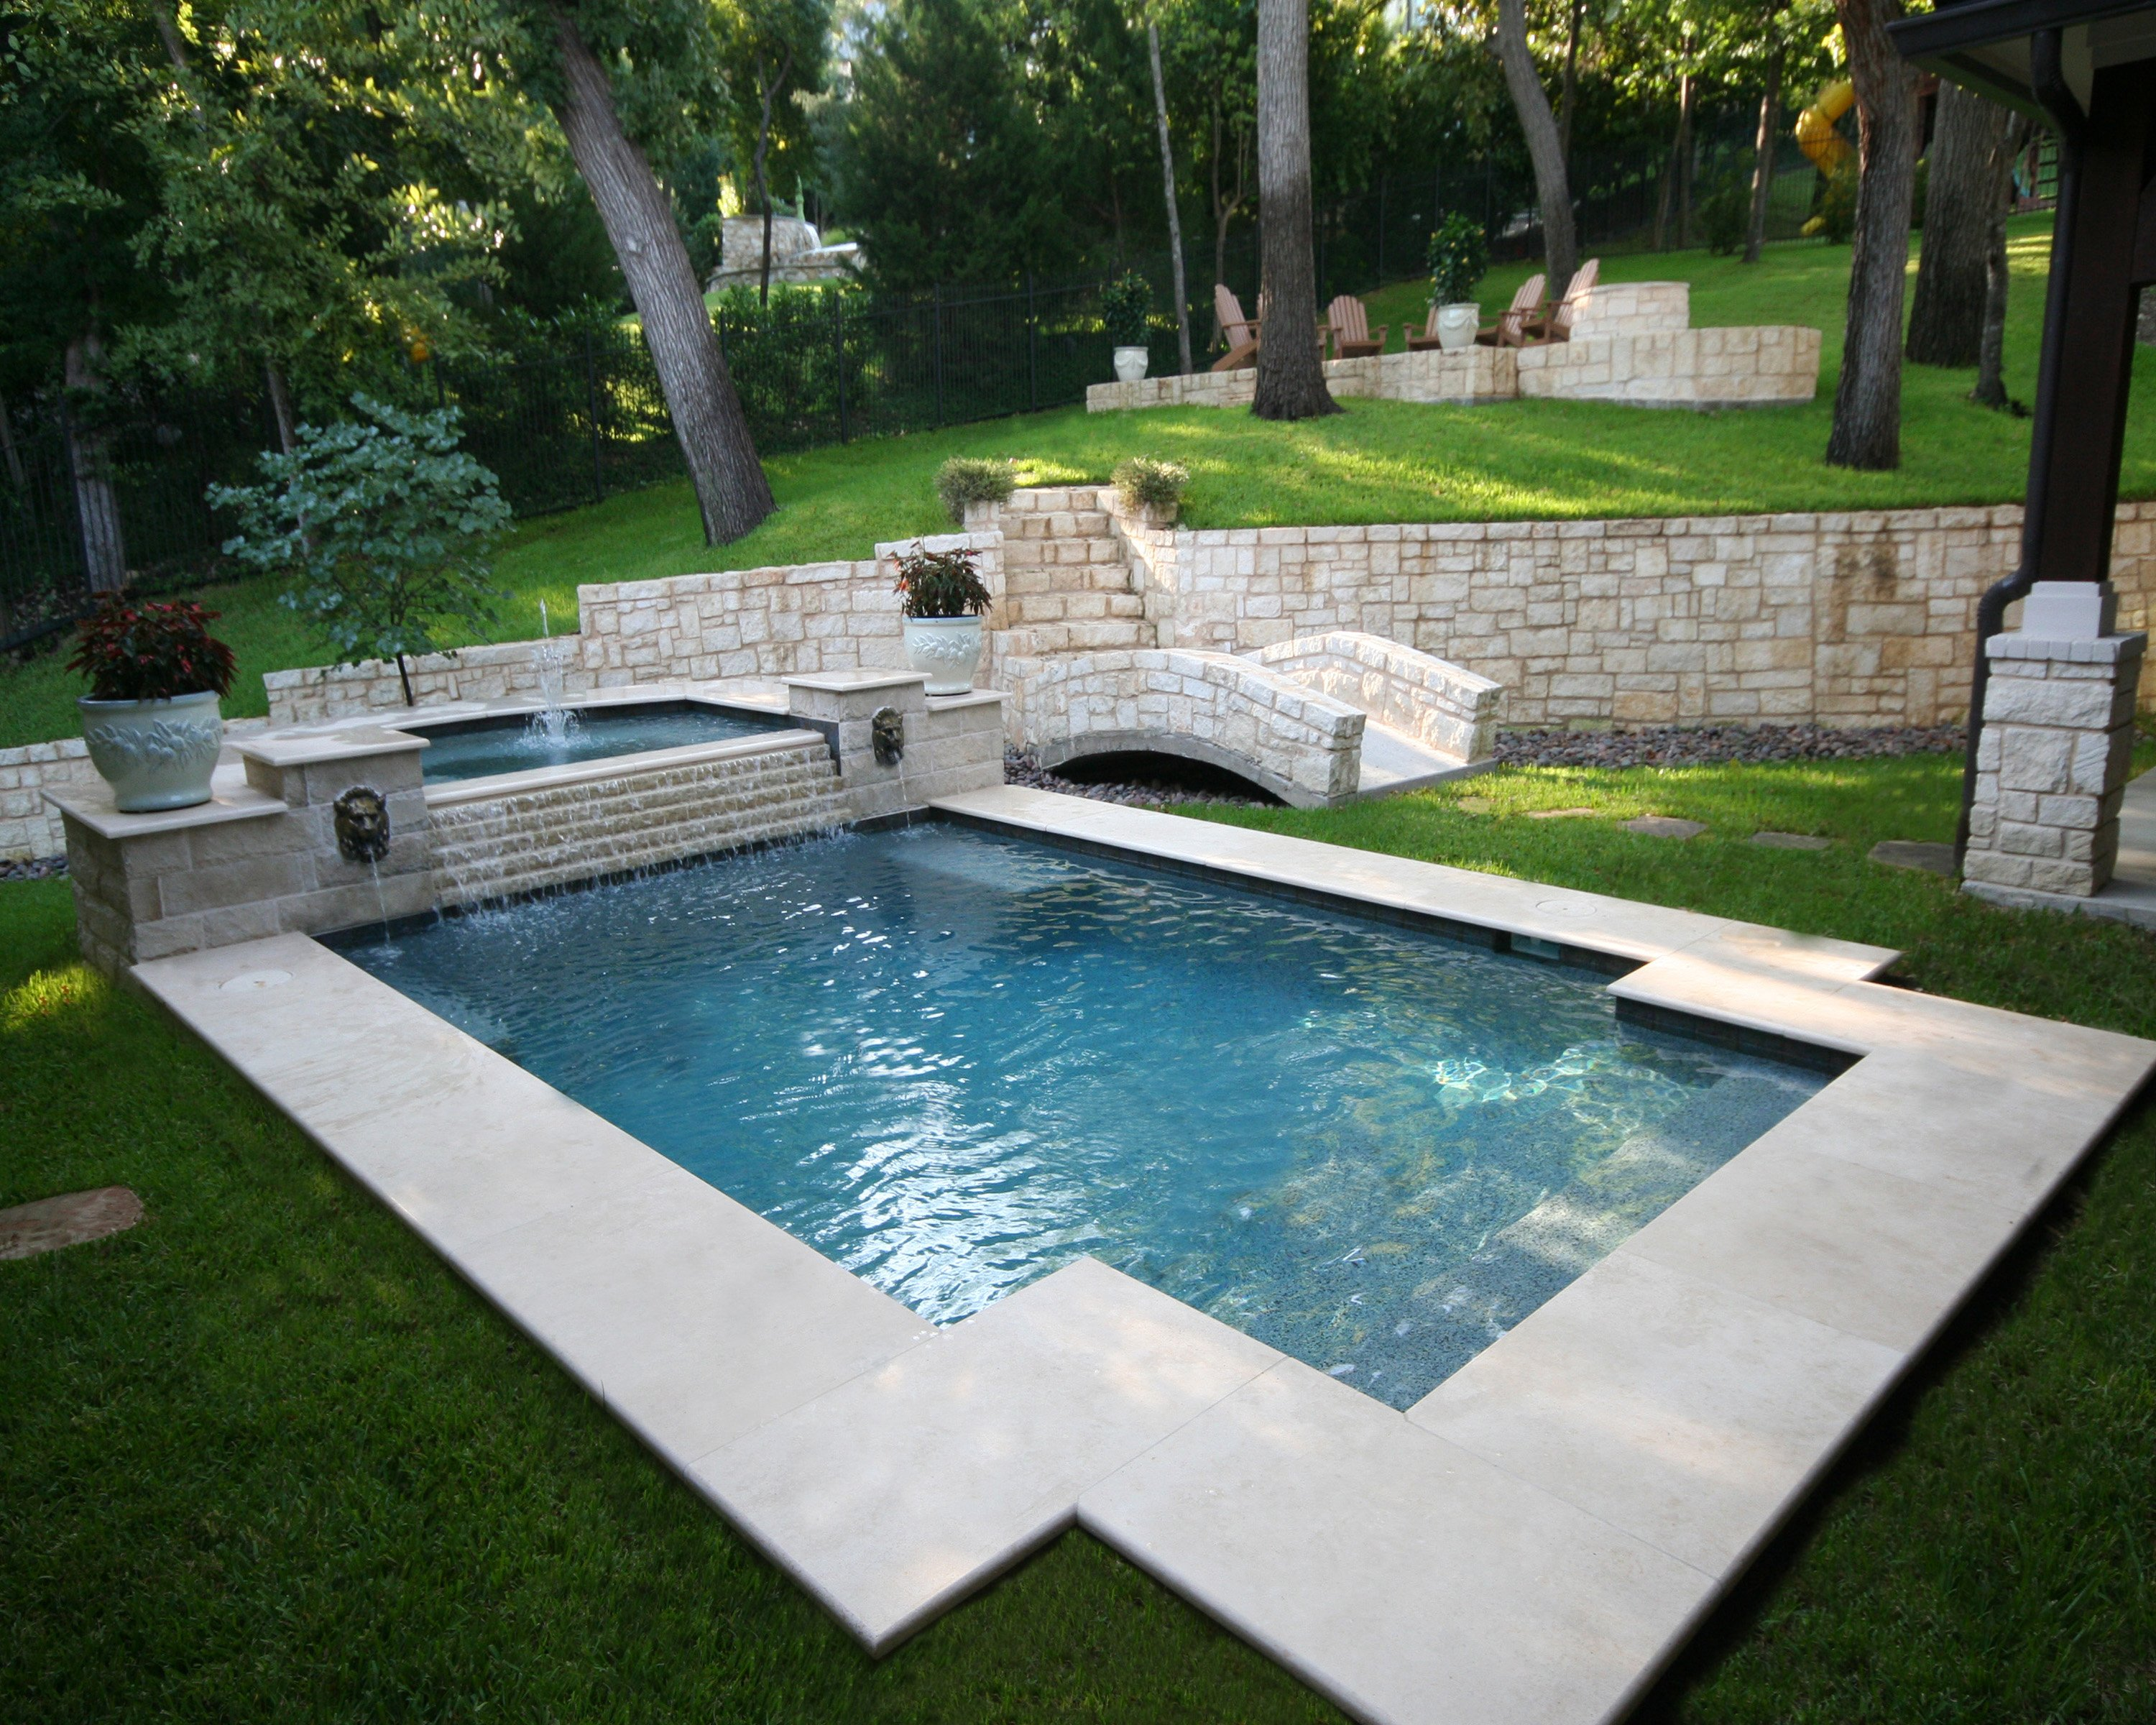 ft. worth pool builder, weatherford, pool renovation keller